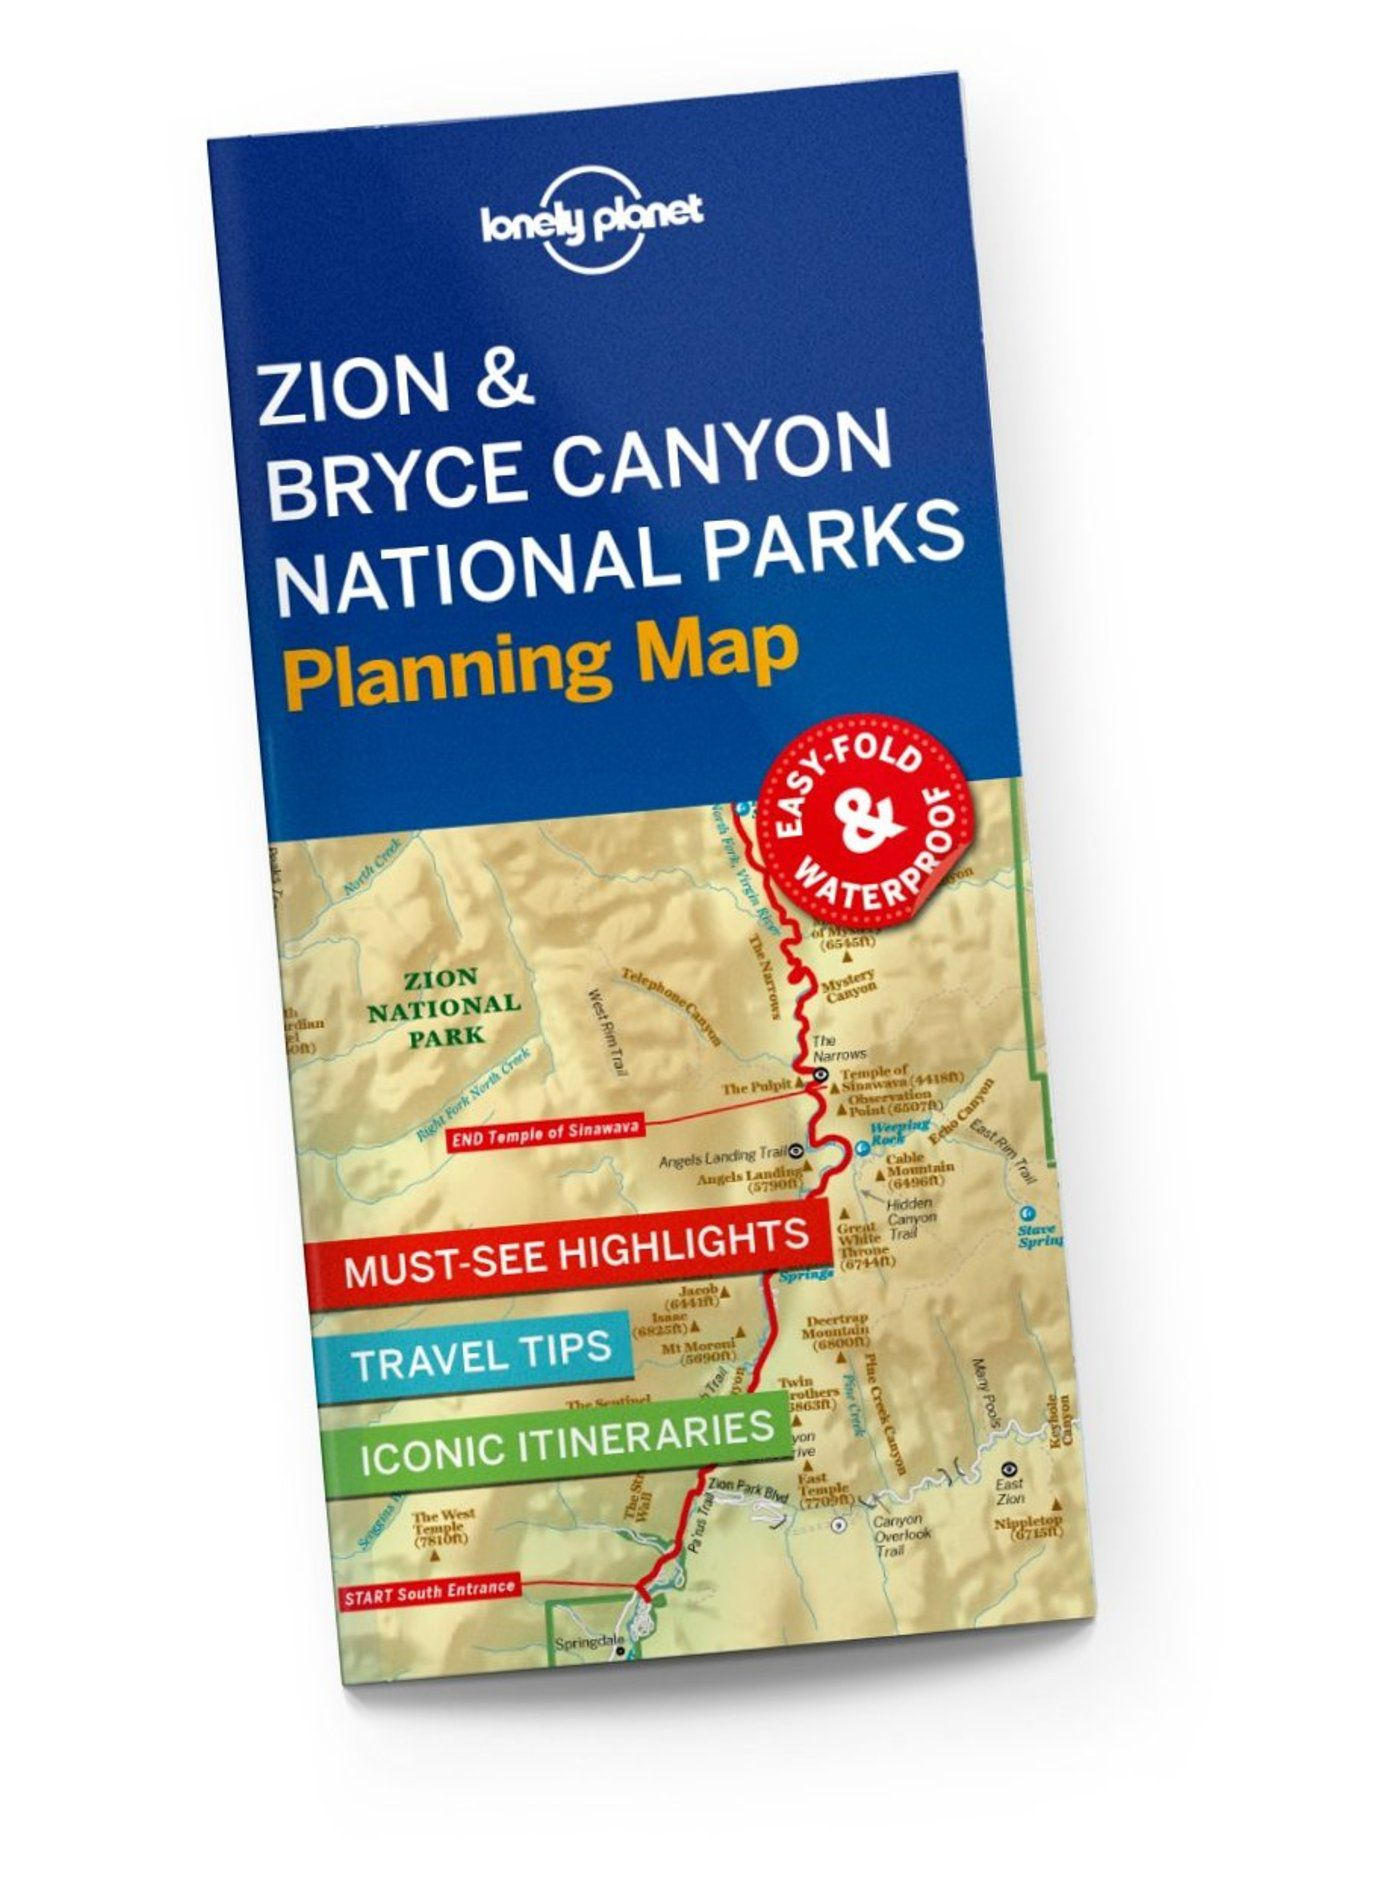 Zion & Bryce Canyon National Parks Planning Map